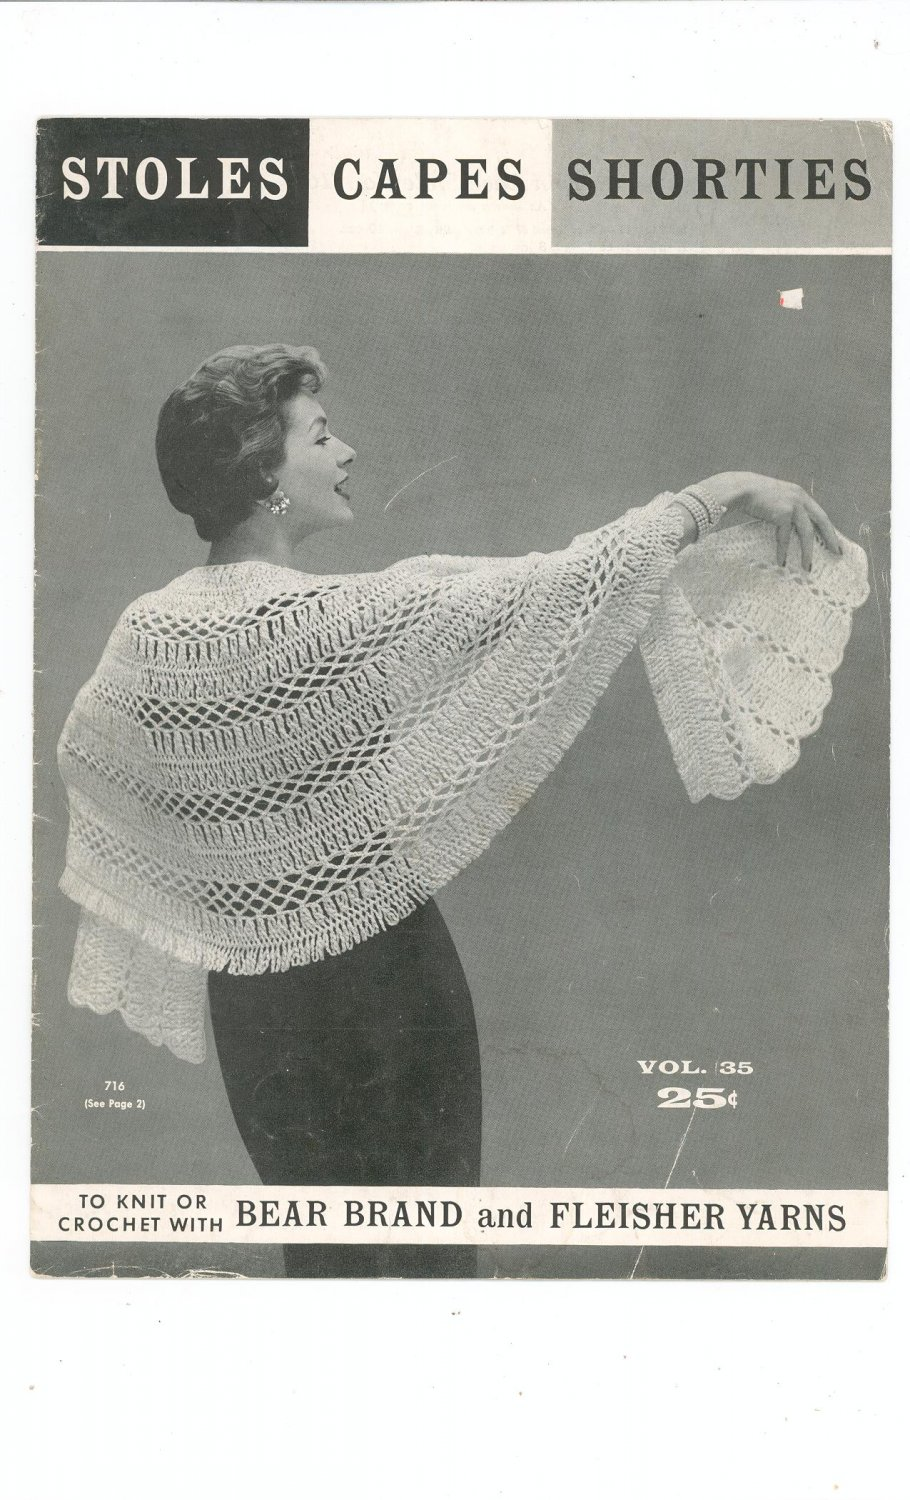 Vintage Stoles Capes Shorties Volume 35 Bear Brand Fleisher Yarns Knit Crochet 1956